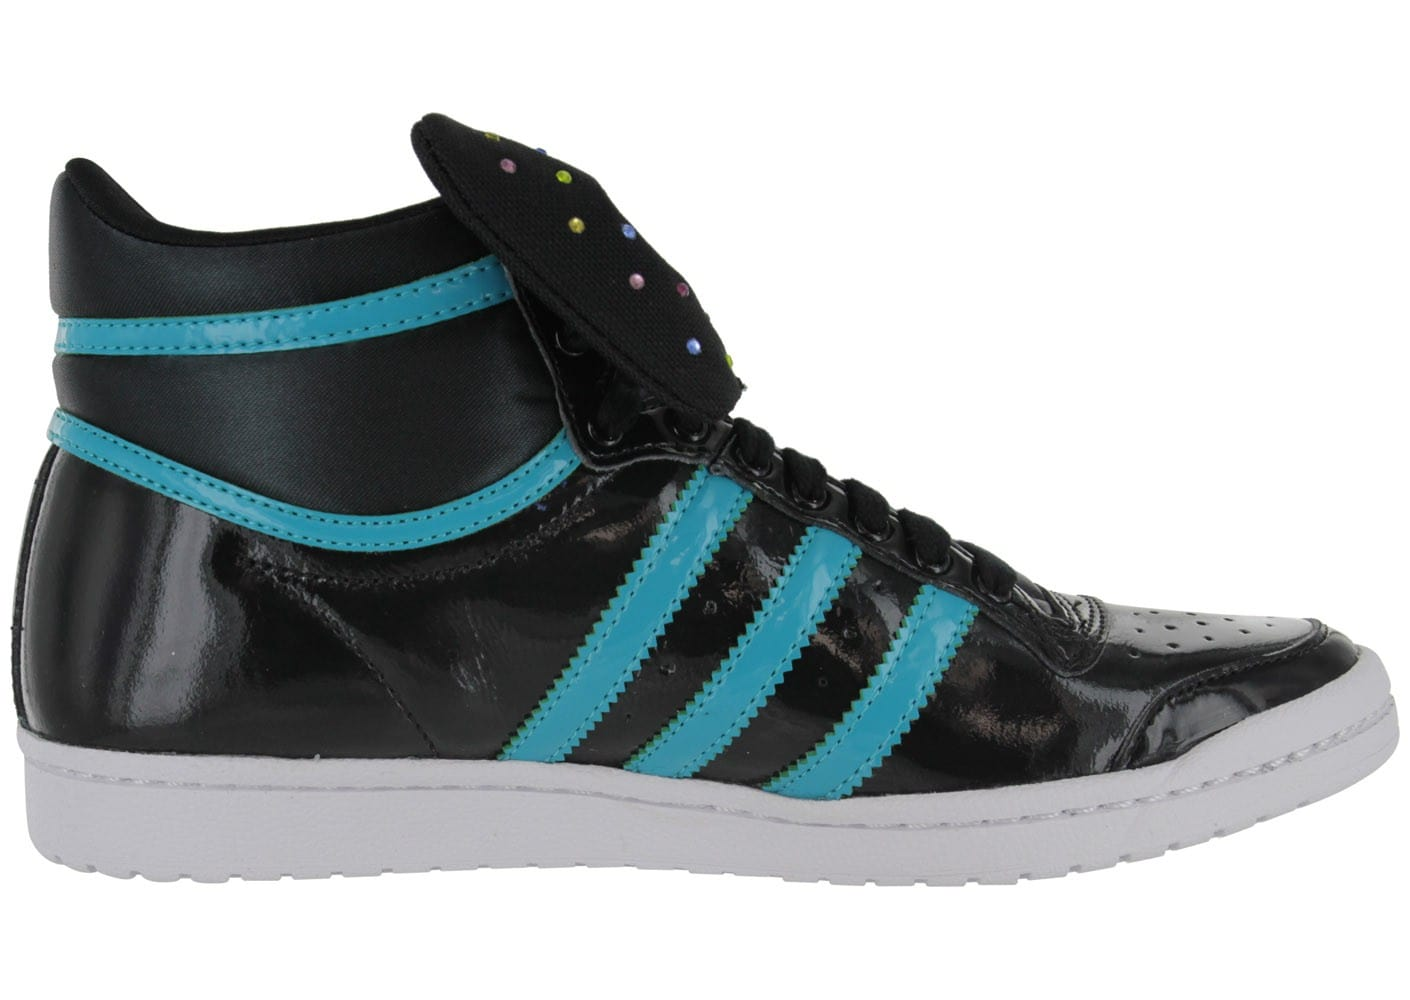 basket adidas noeud papillon,chaussures adidas haute femme